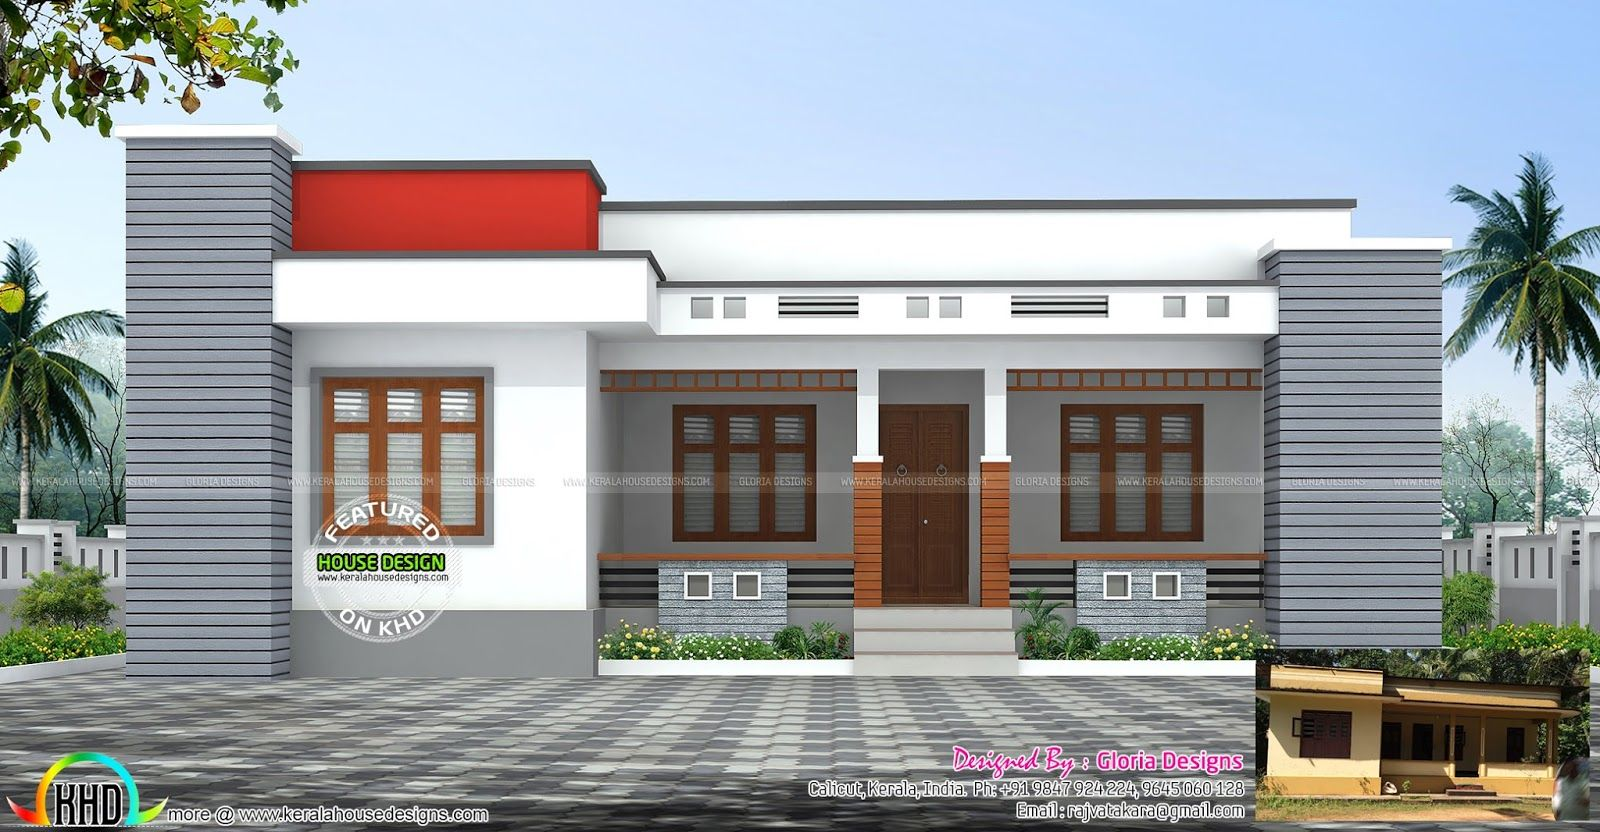 7d27e91c308d9663d243e62290febd06 - Download Small Modern House Designs In Tamilnadu  PNG